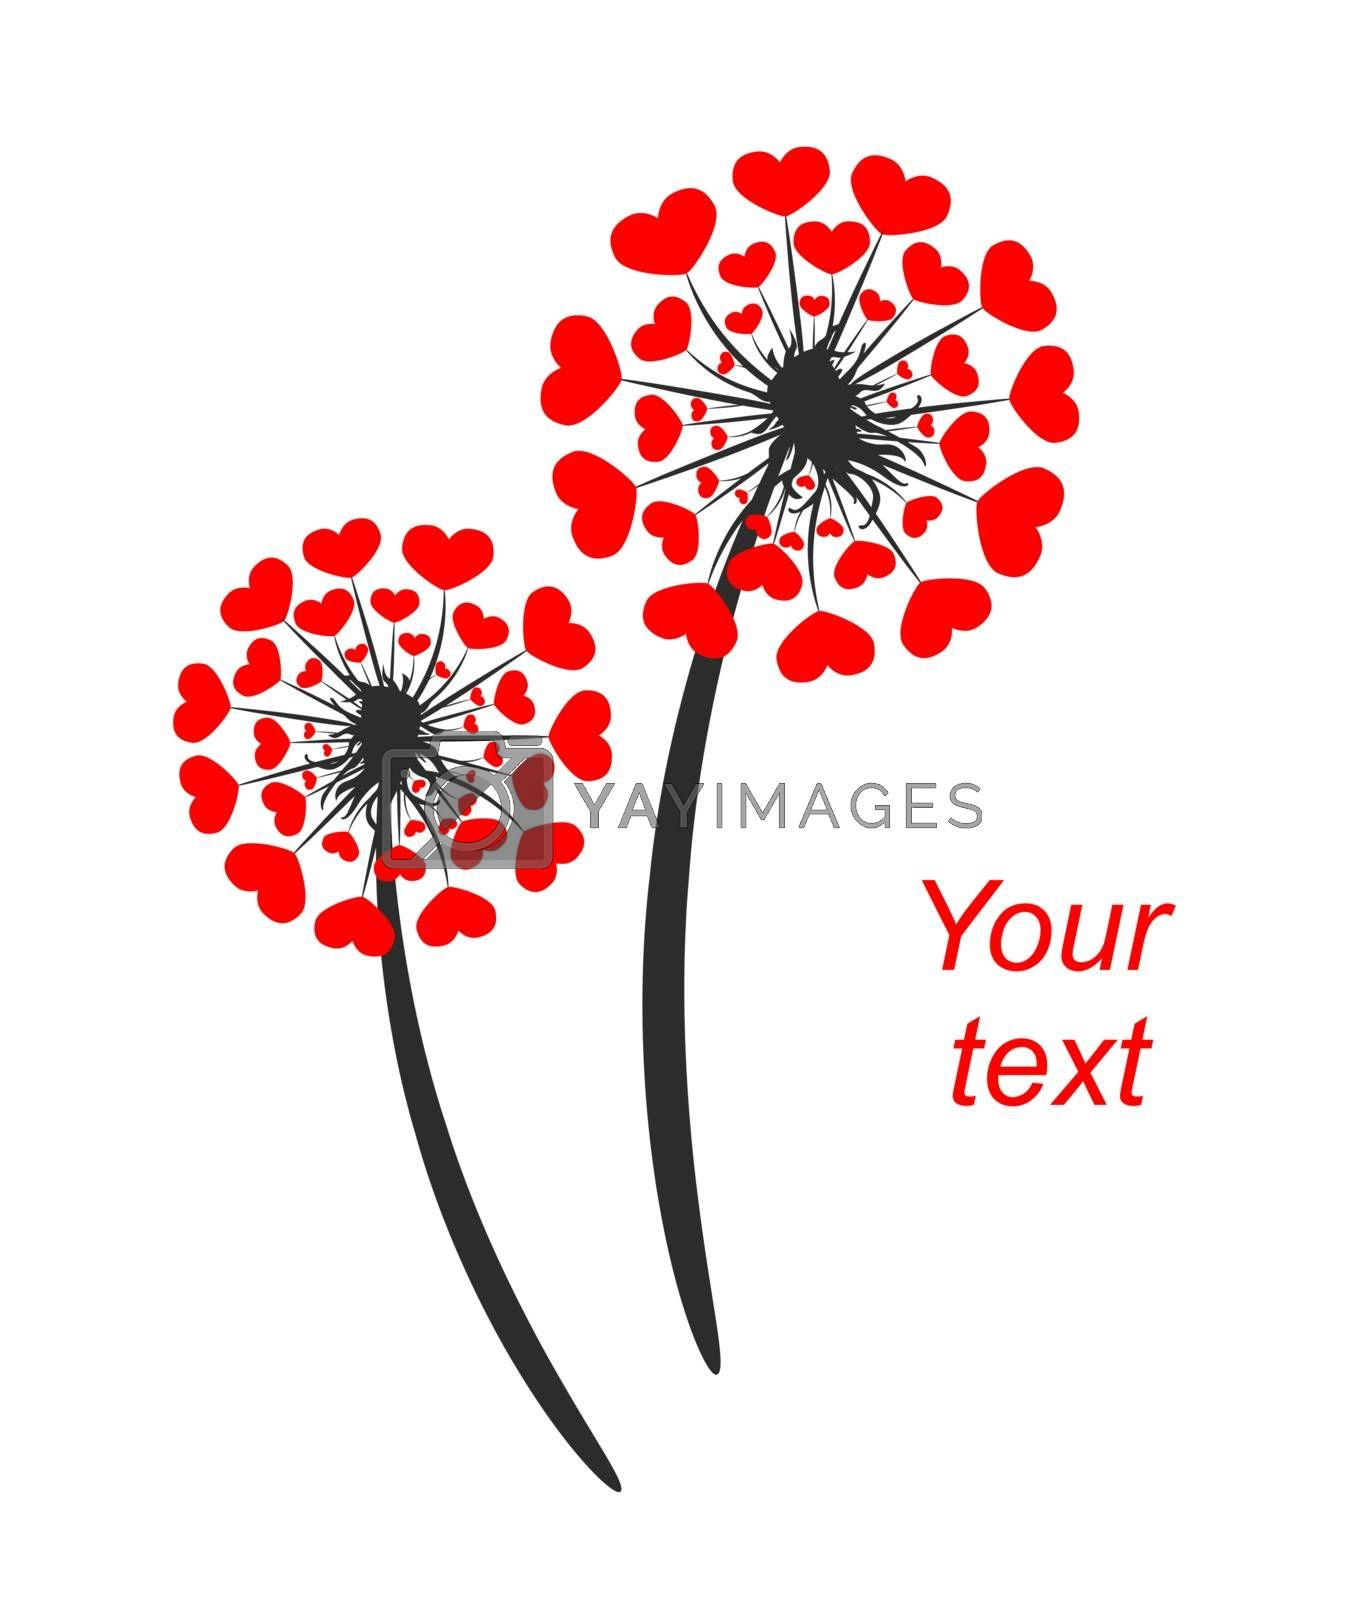 Abstract plant of a dandelion with hearts. Greeting card for Valentine's Day. Dandelion and hearts on a white background.